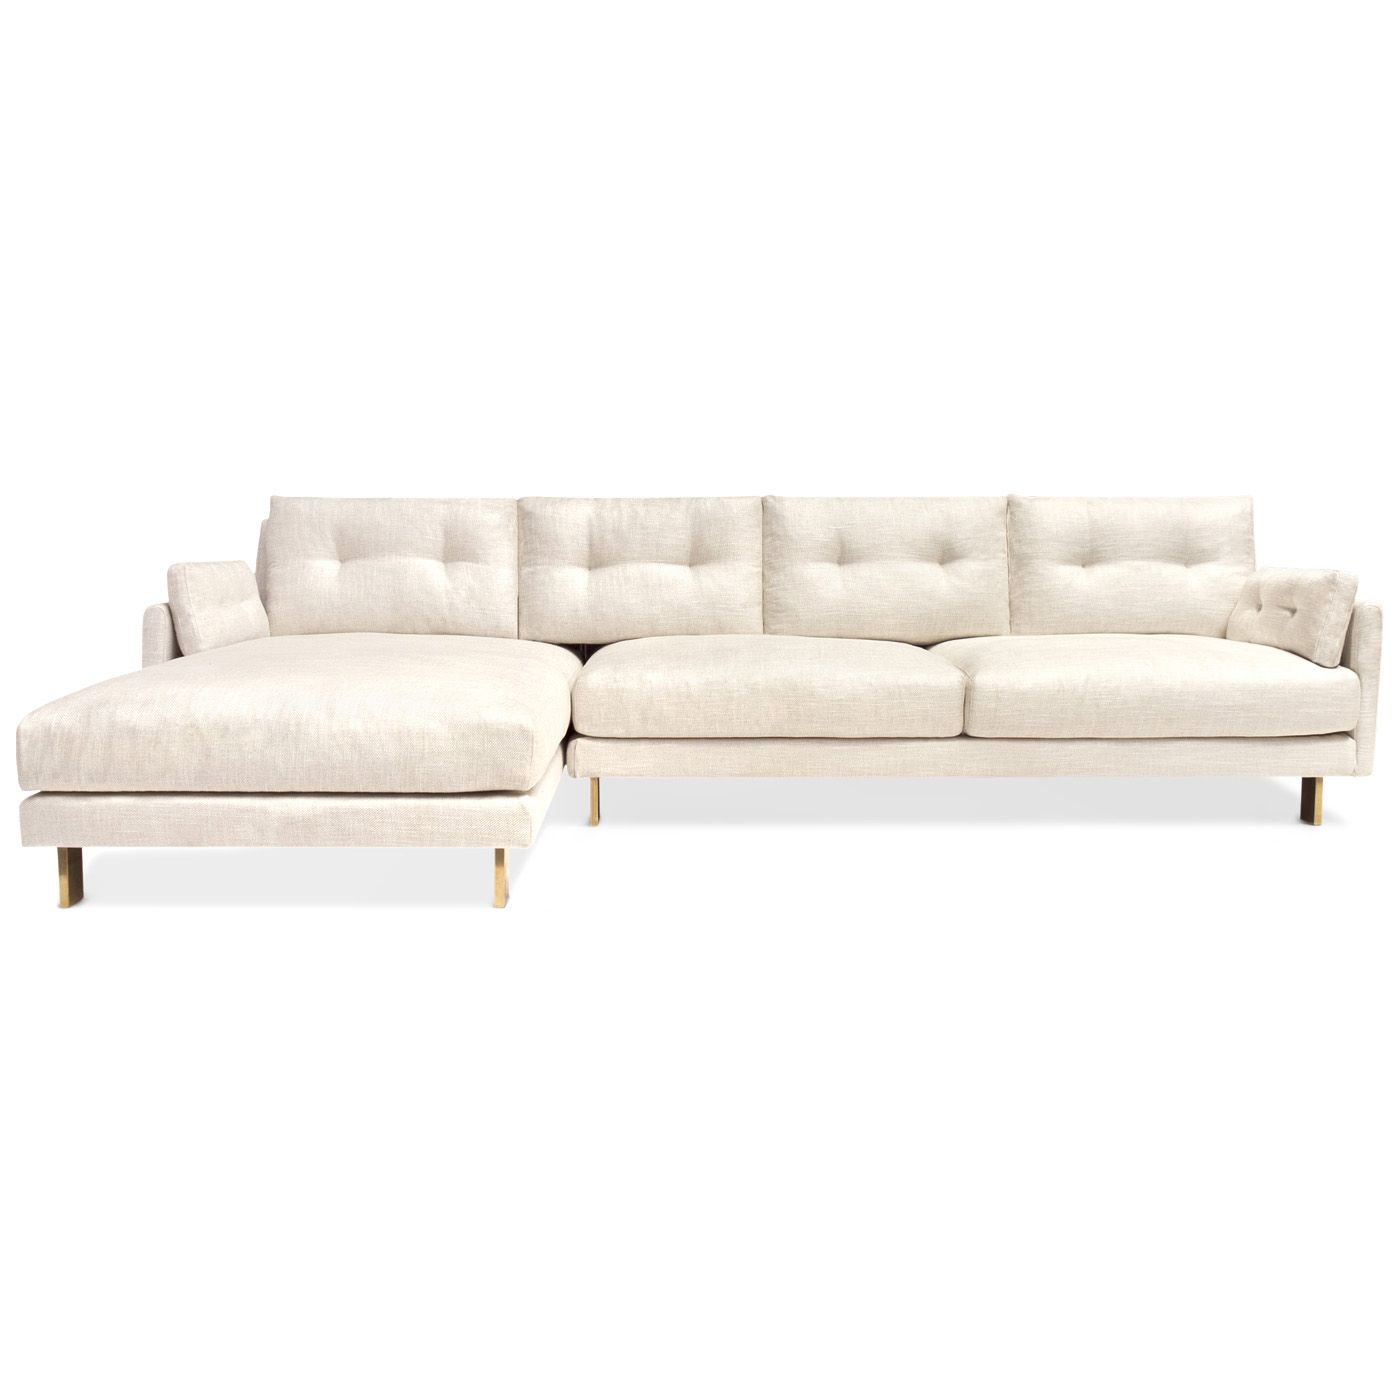 Sofa Beds Like for a first floor family room but in a different fabric available w